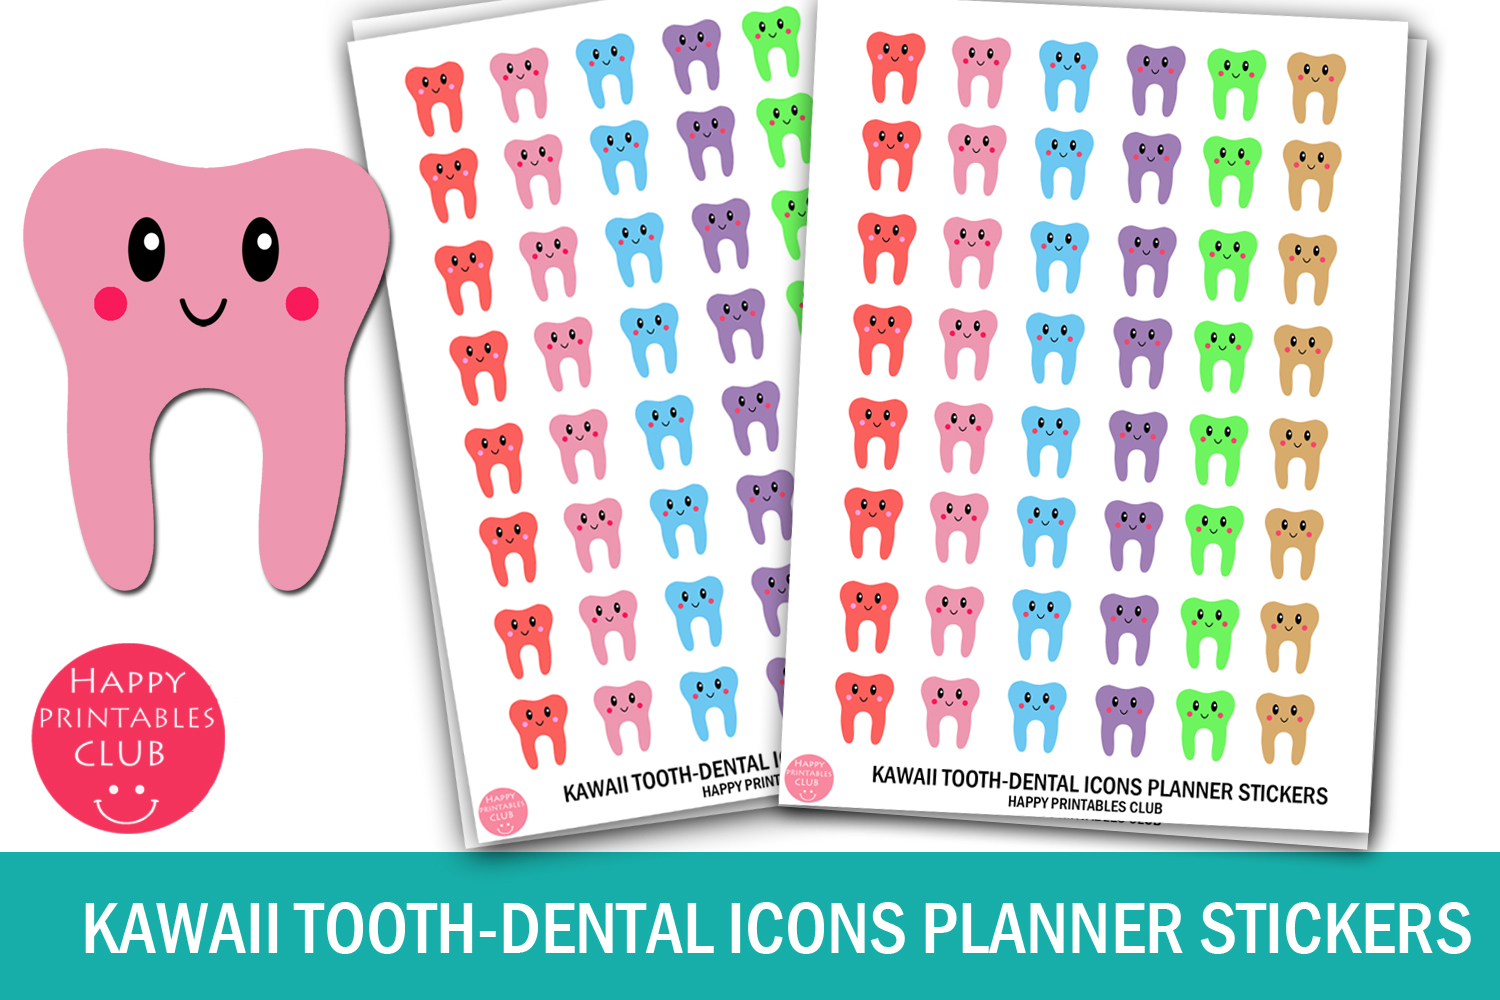 Download Free Kawaii Tooth Dental Planner Stickers Graphic By Happy for Cricut Explore, Silhouette and other cutting machines.